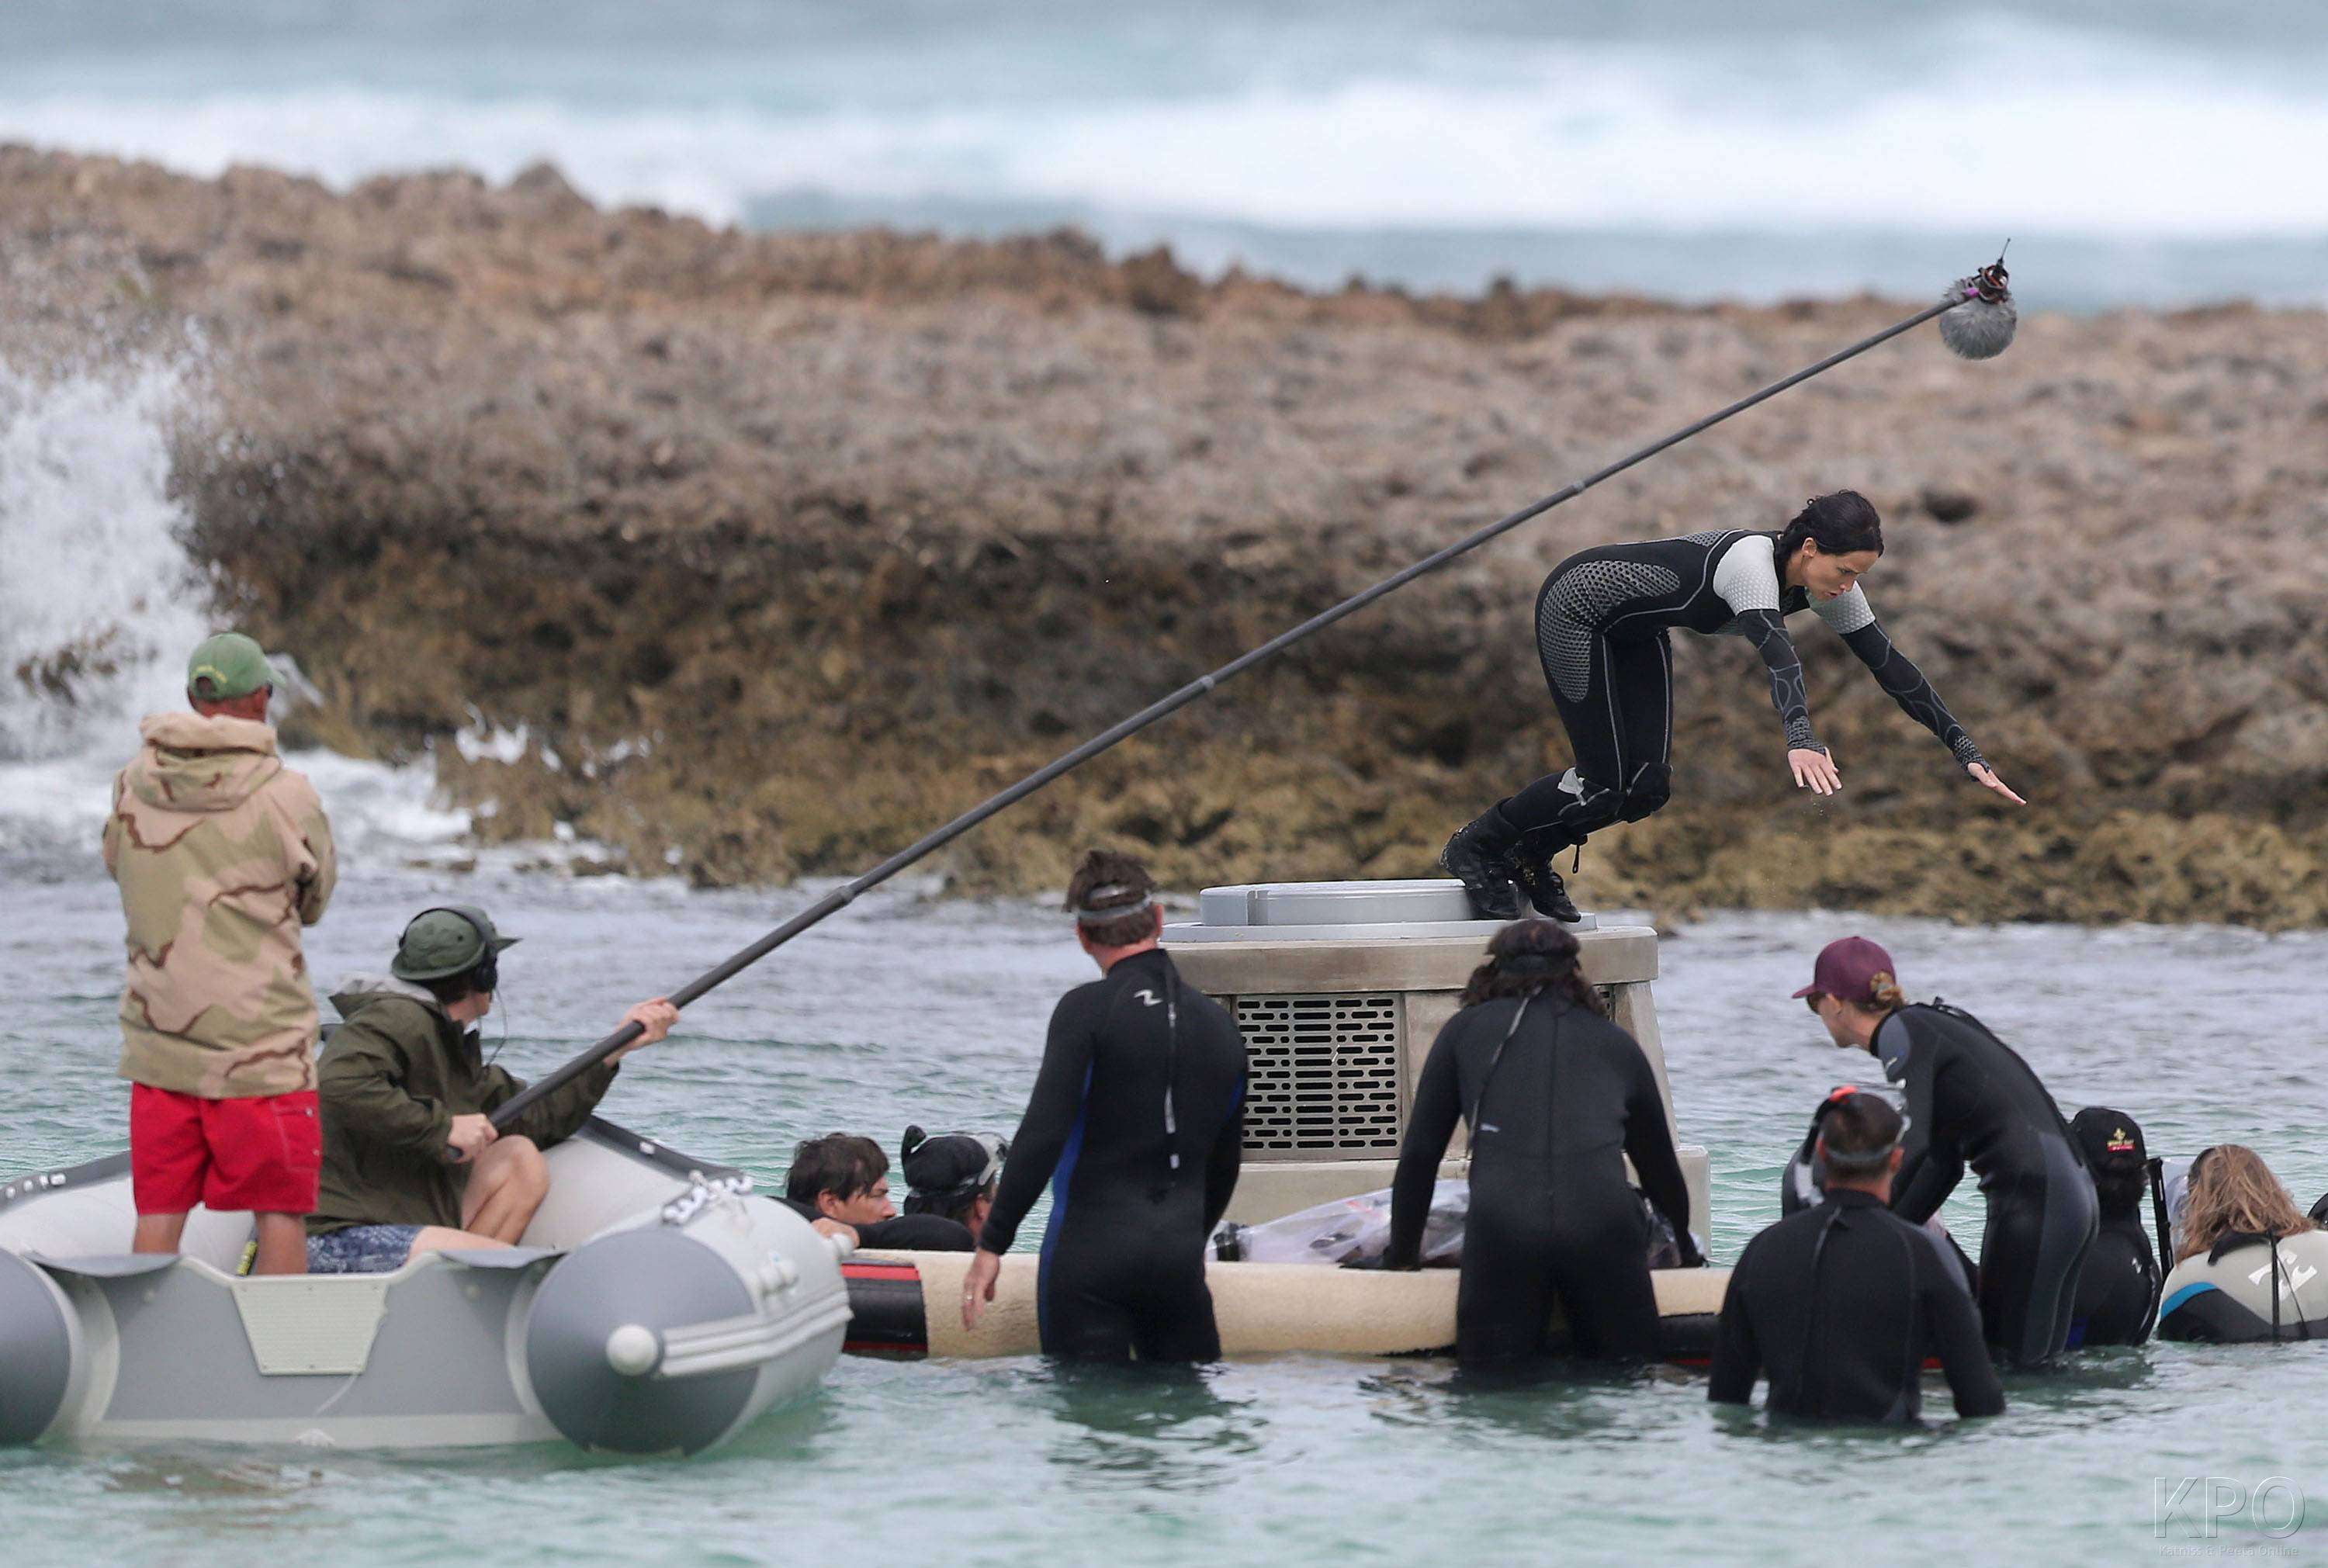 Catching 火, 消防 shooting in Hawaii